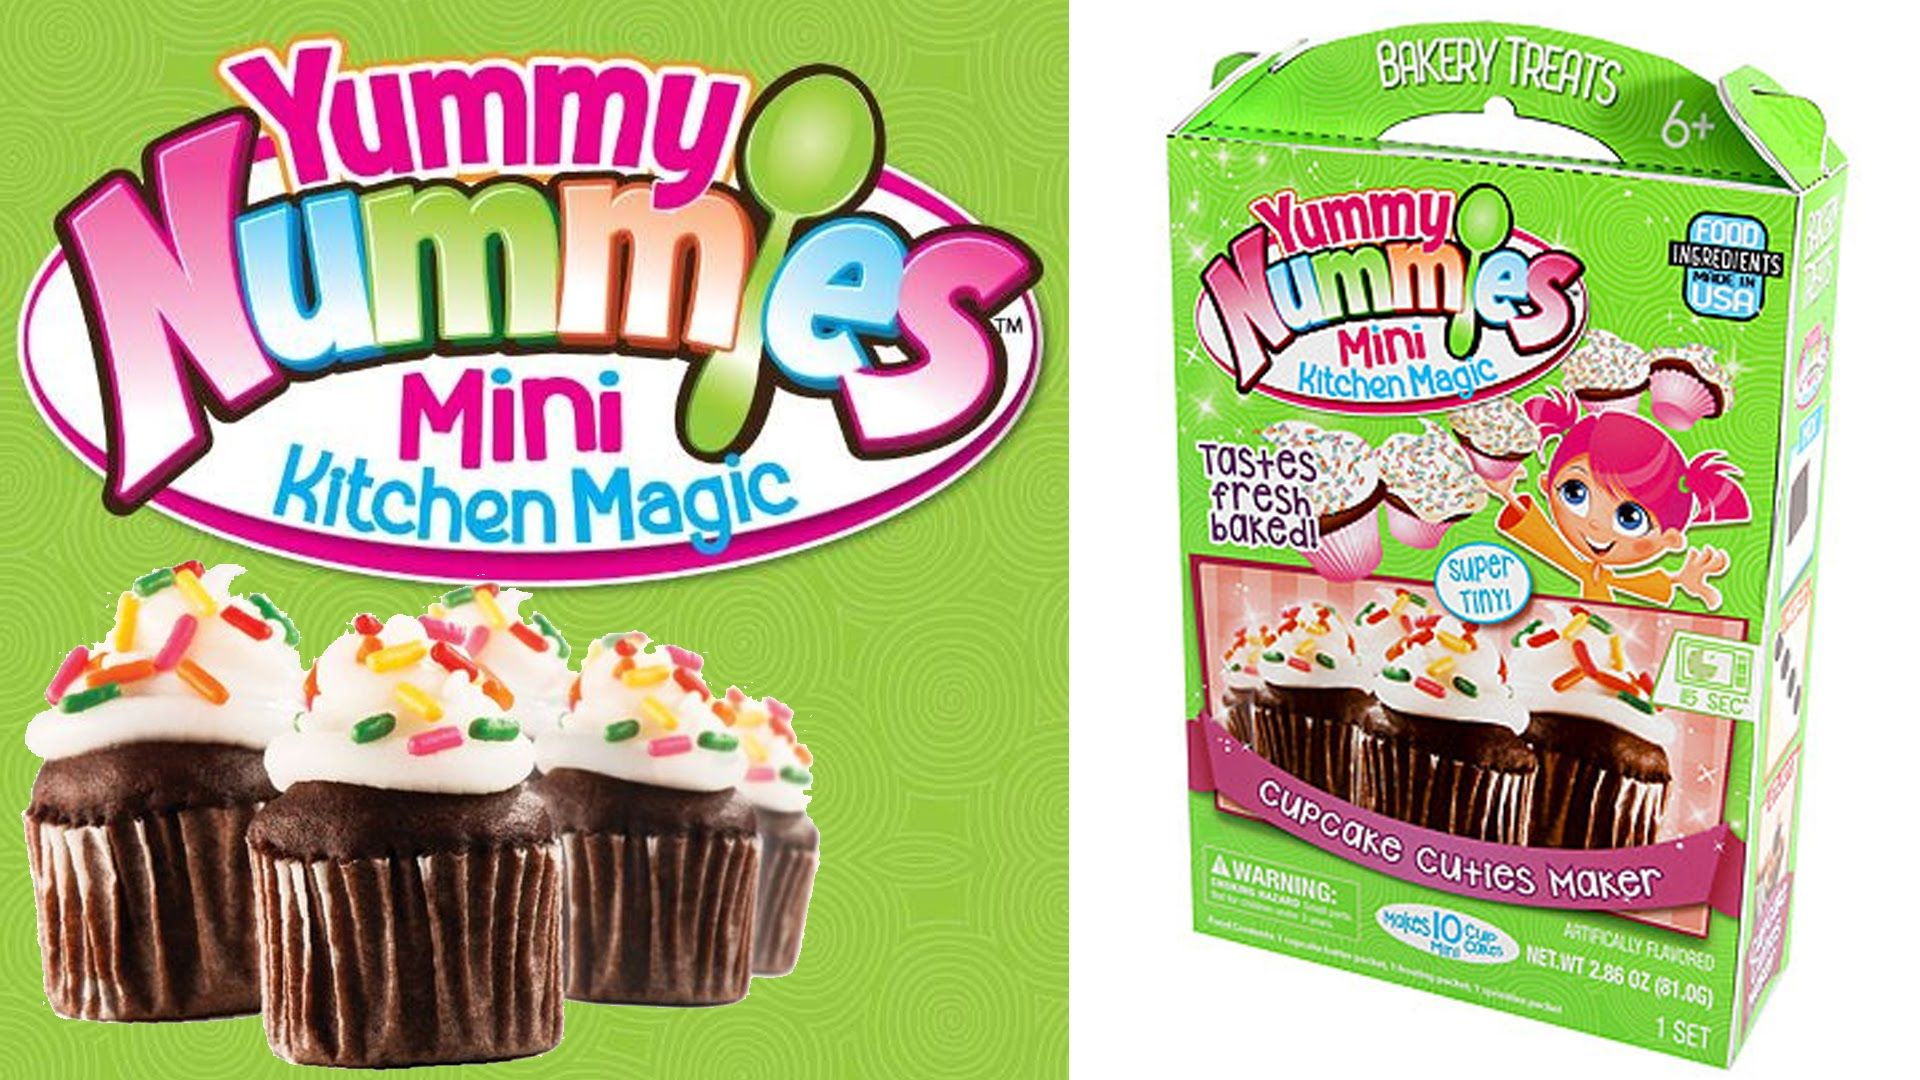 FOREVER FRIENDS BAKERY | Yummy Nummies Chocolate Cupcakes